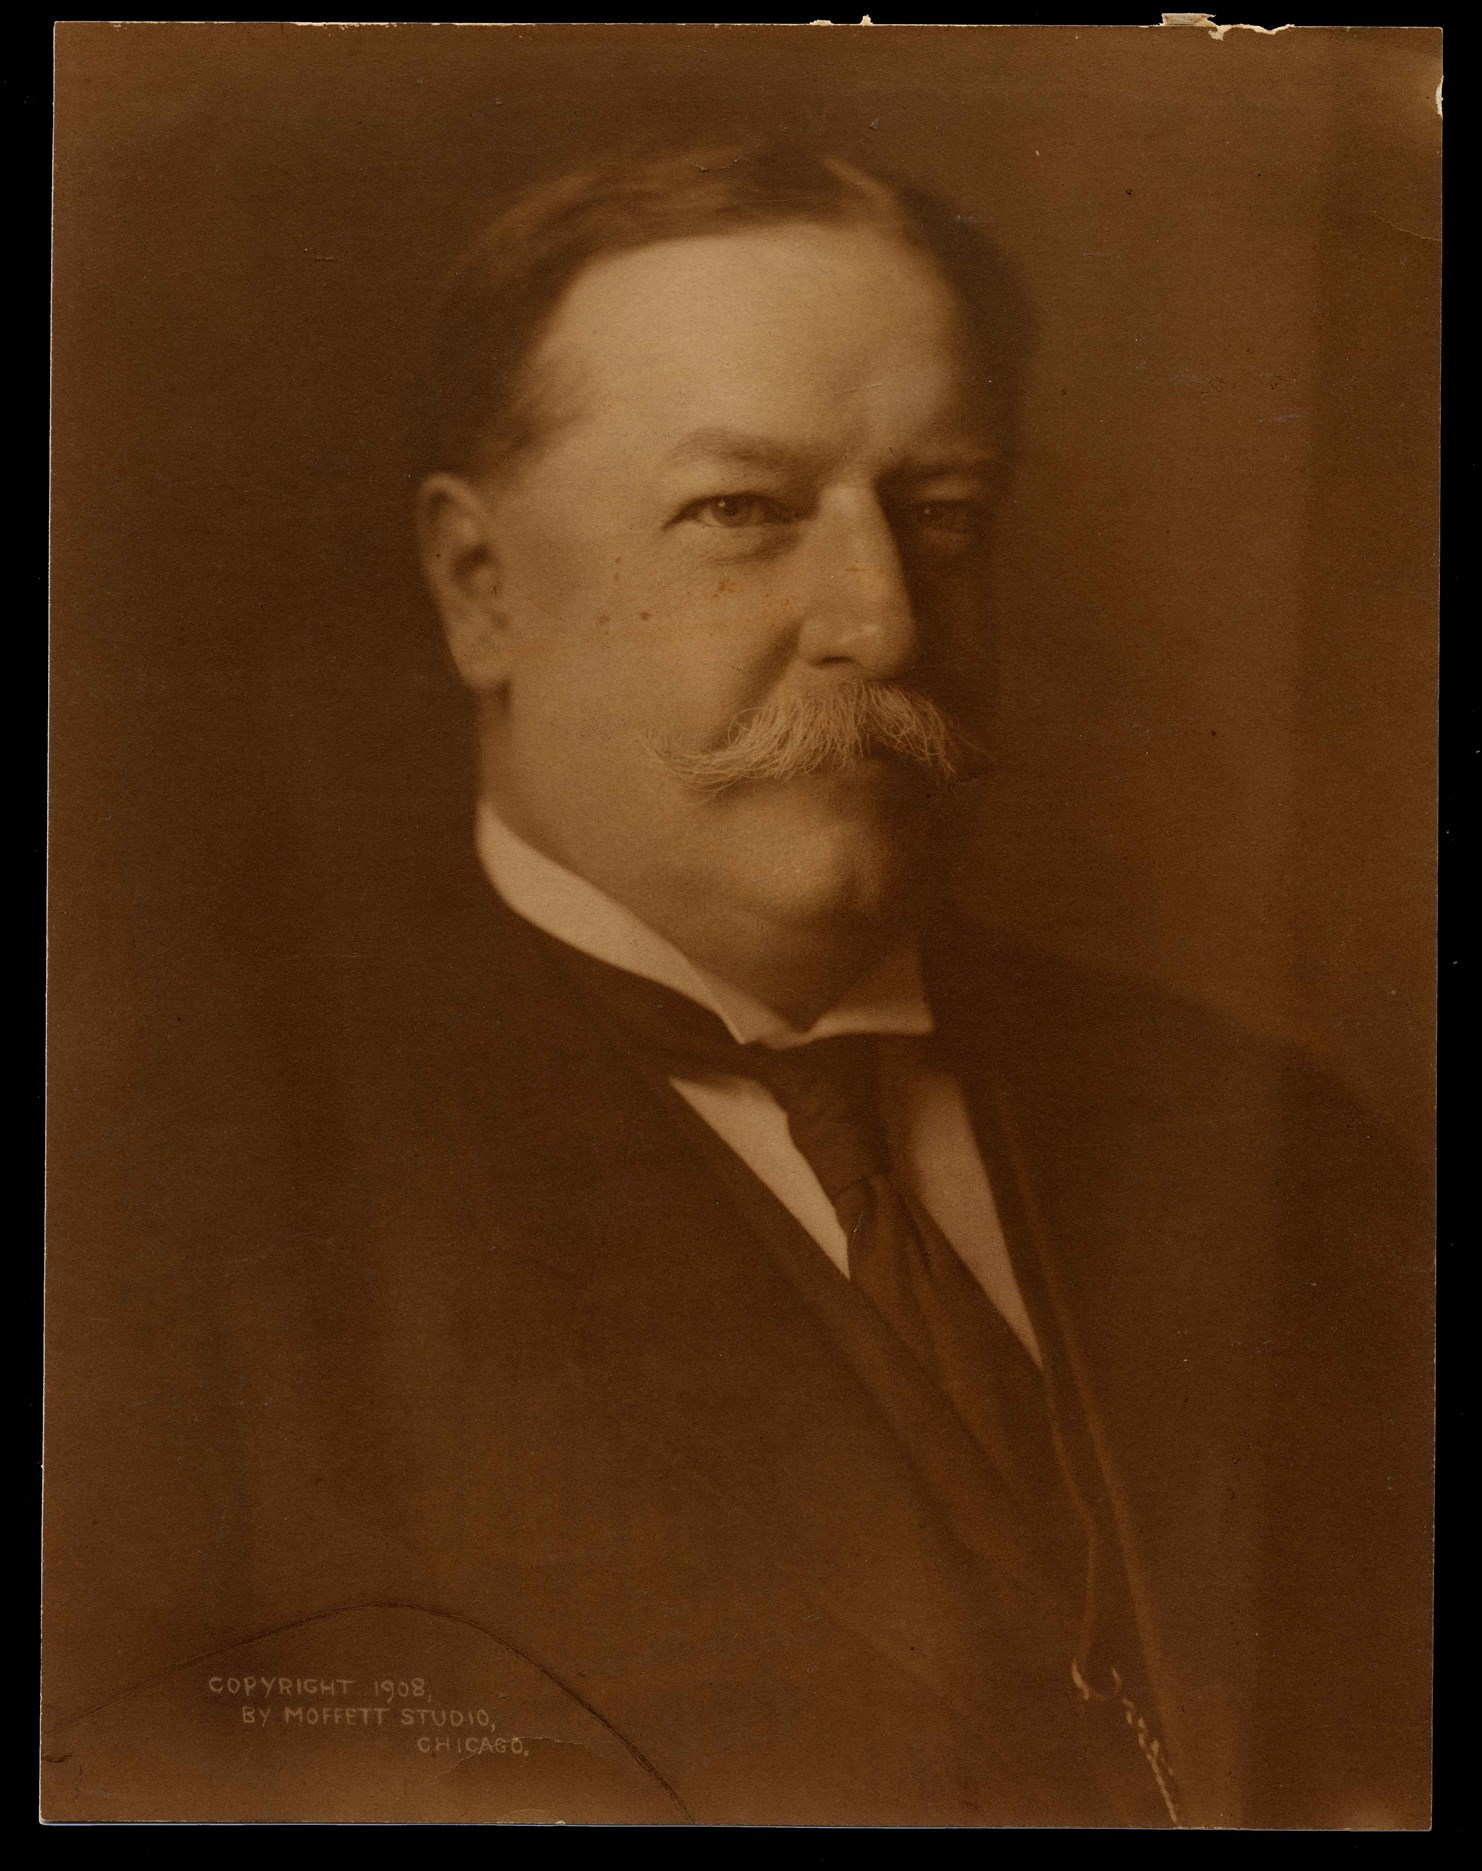 essay on william howard taft William howard taft and the question of this paper focuses on the role of william h taft in the william howard taft papers 8:463 [microfilm] 2.